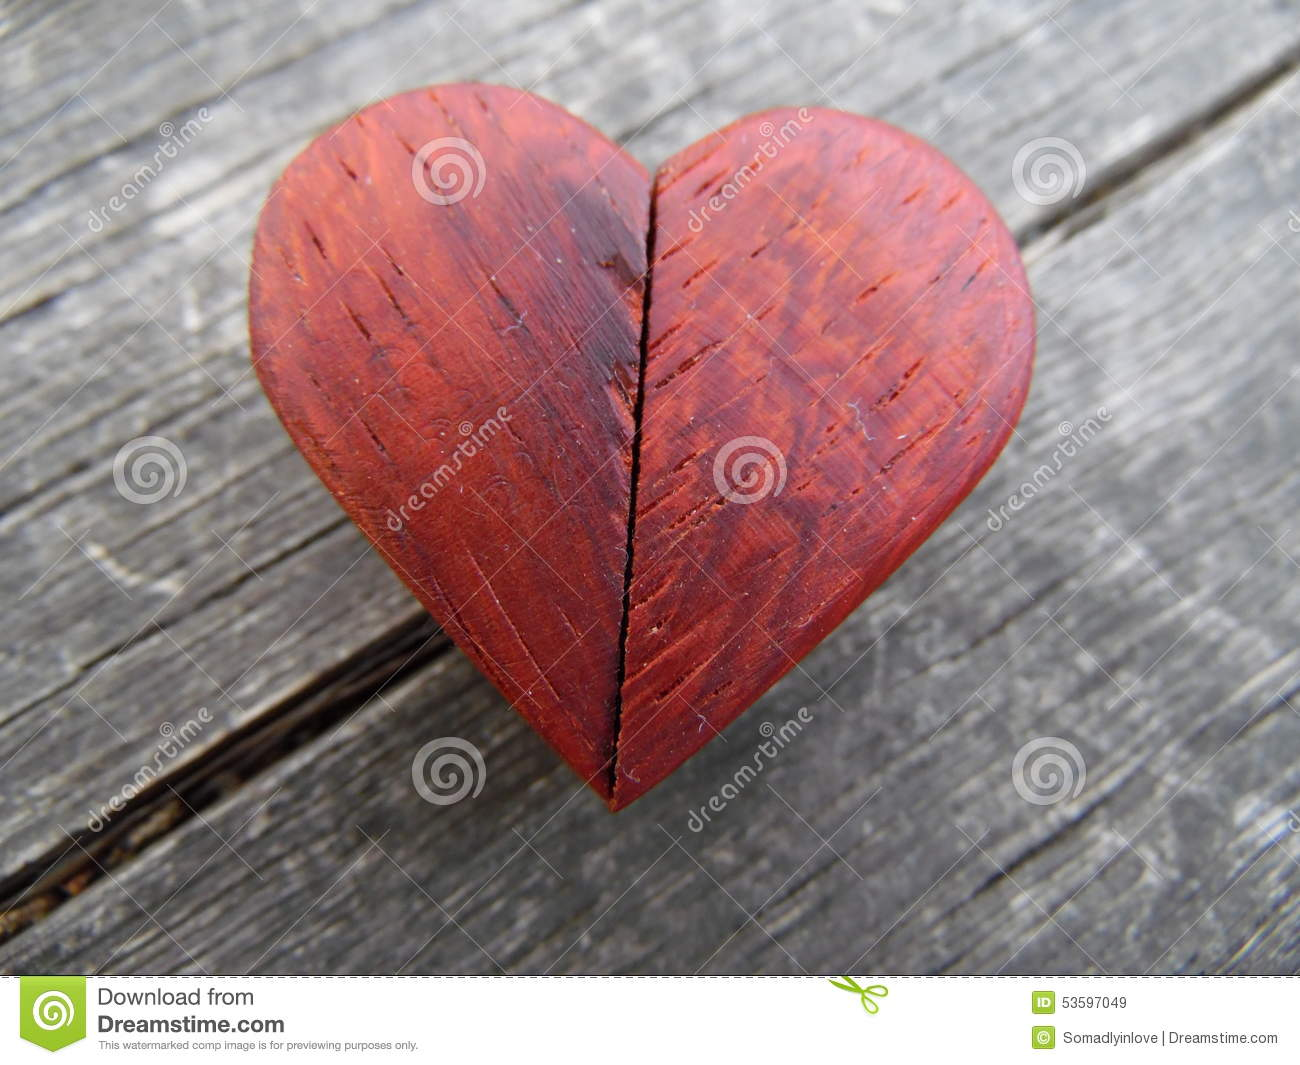 Macro Photograph of Red Wooden Heart